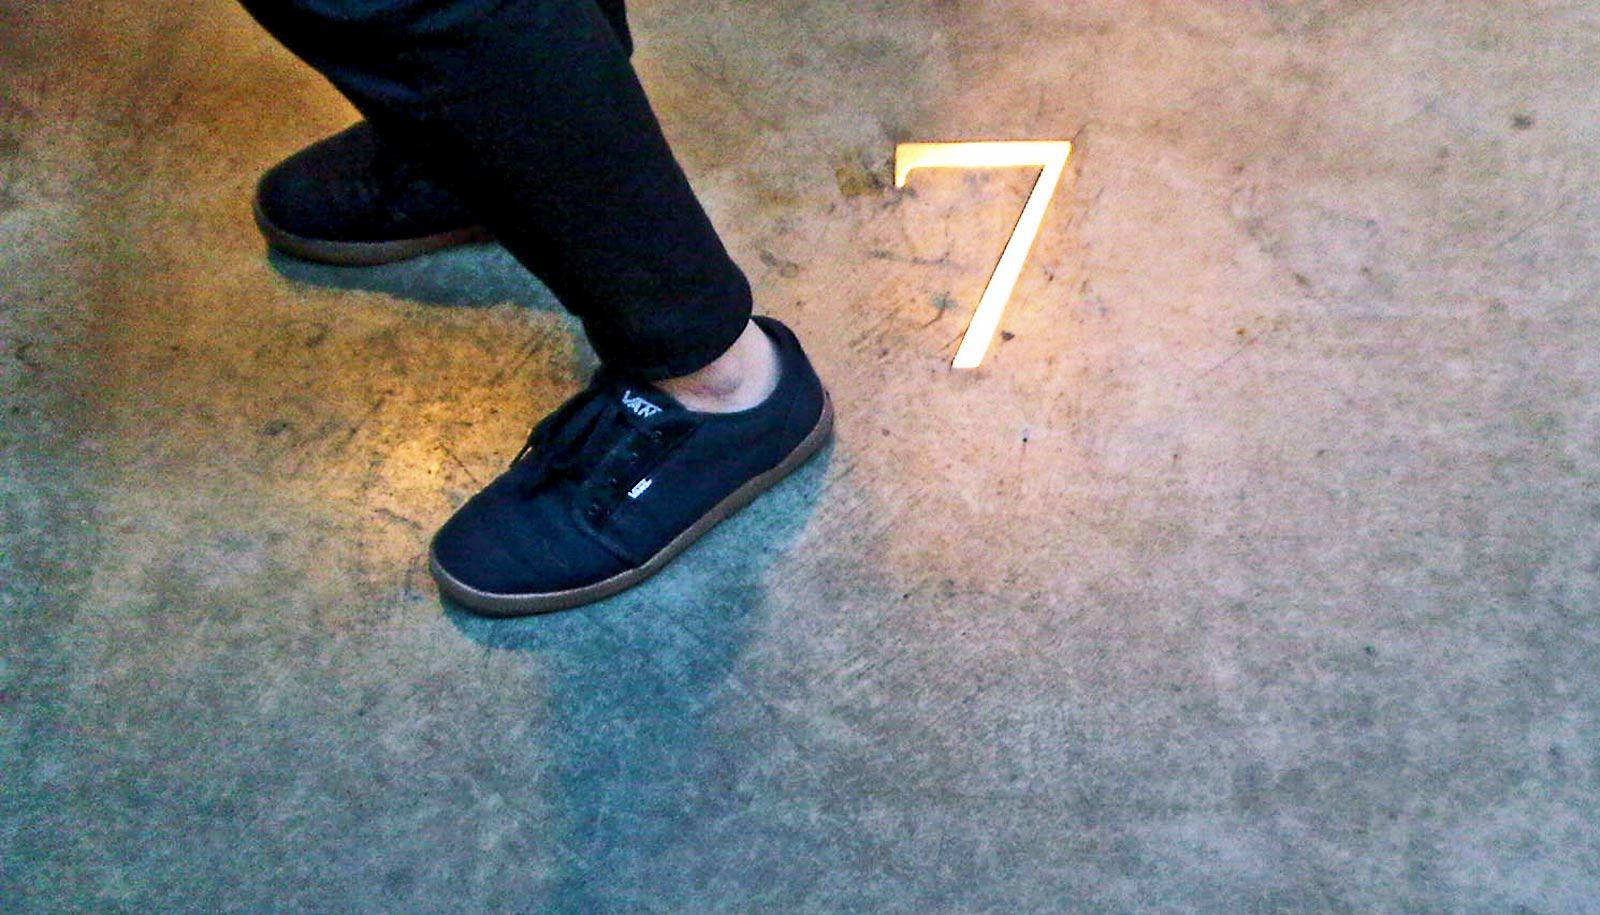 heart disease risk: feet by number 7 on cement floor